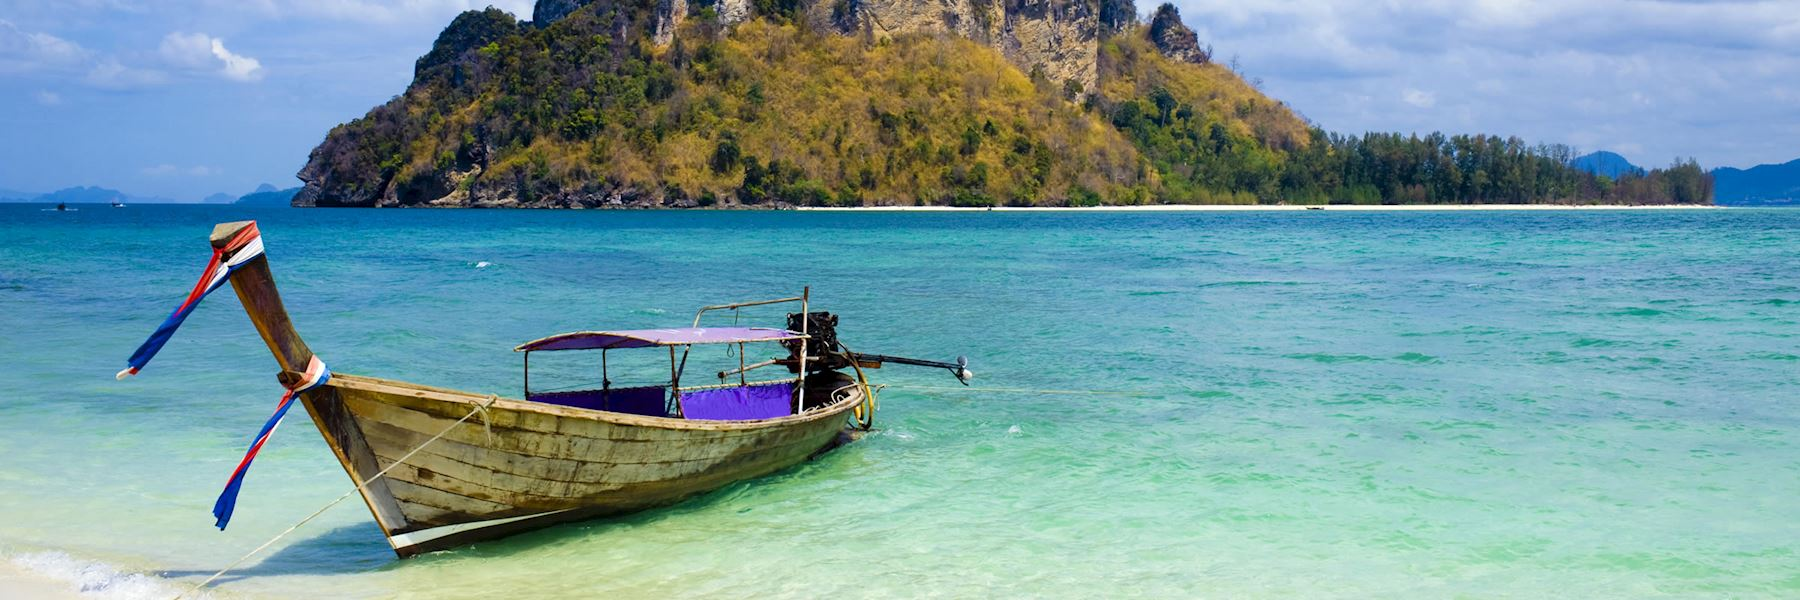 Visit Koh Samet On A Trip To Thailand Audley Travel